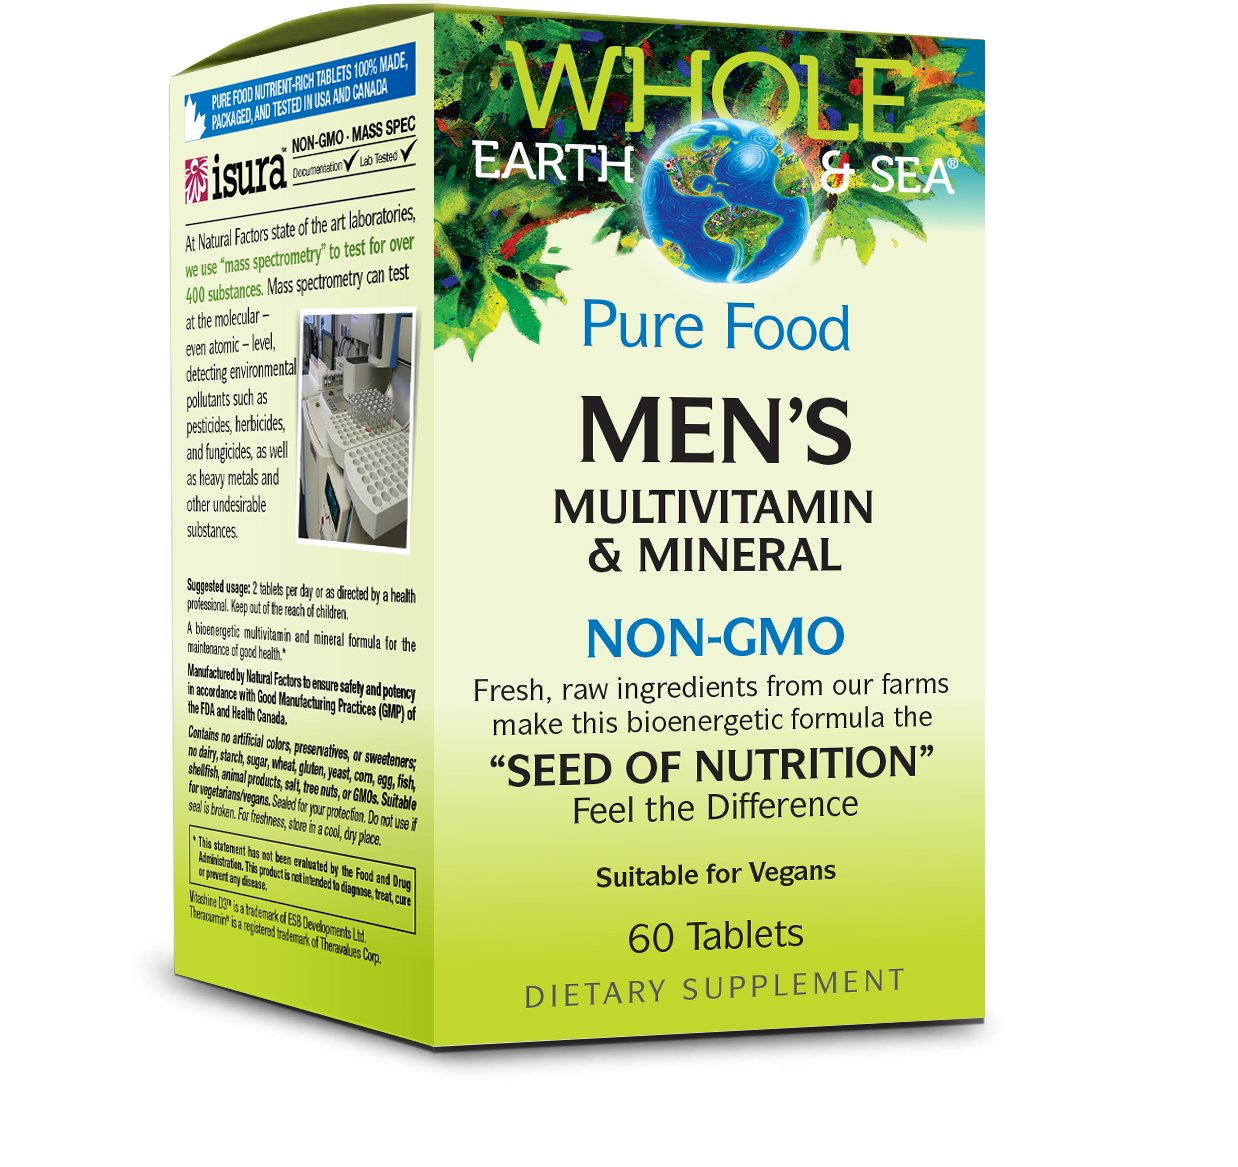 Whole Earth & Sea - Men's Multivitamin & Mineral, Raw, Whole Food Nutrition, 60 Tablets